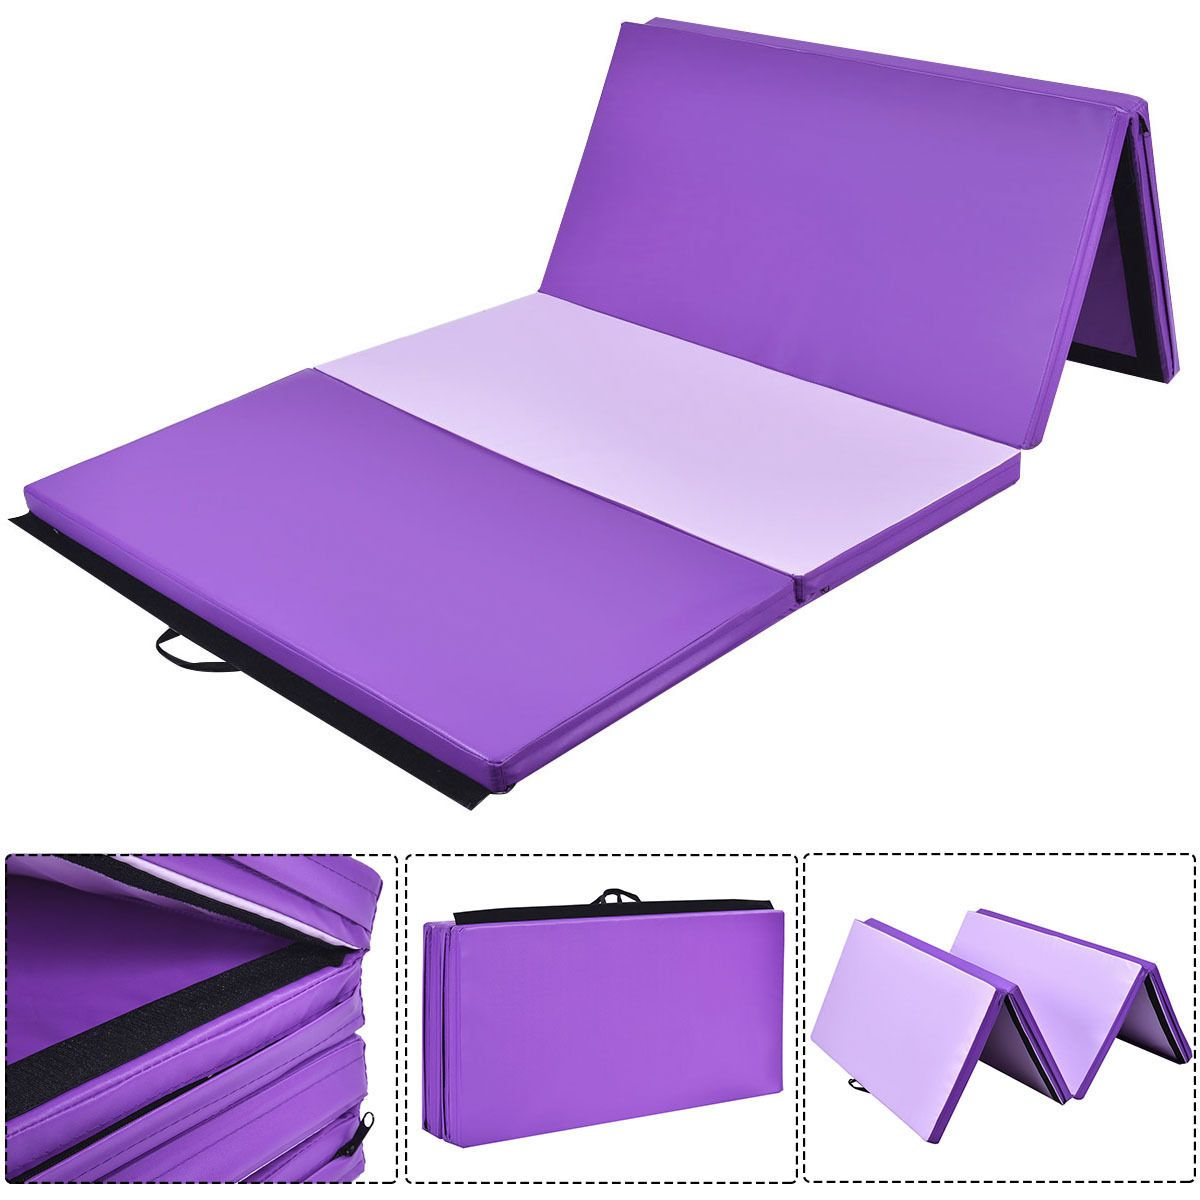 velcro fitness xtreme com various sdx floor colours or x sportsdynamix gymnastics mats gym without health with exercise